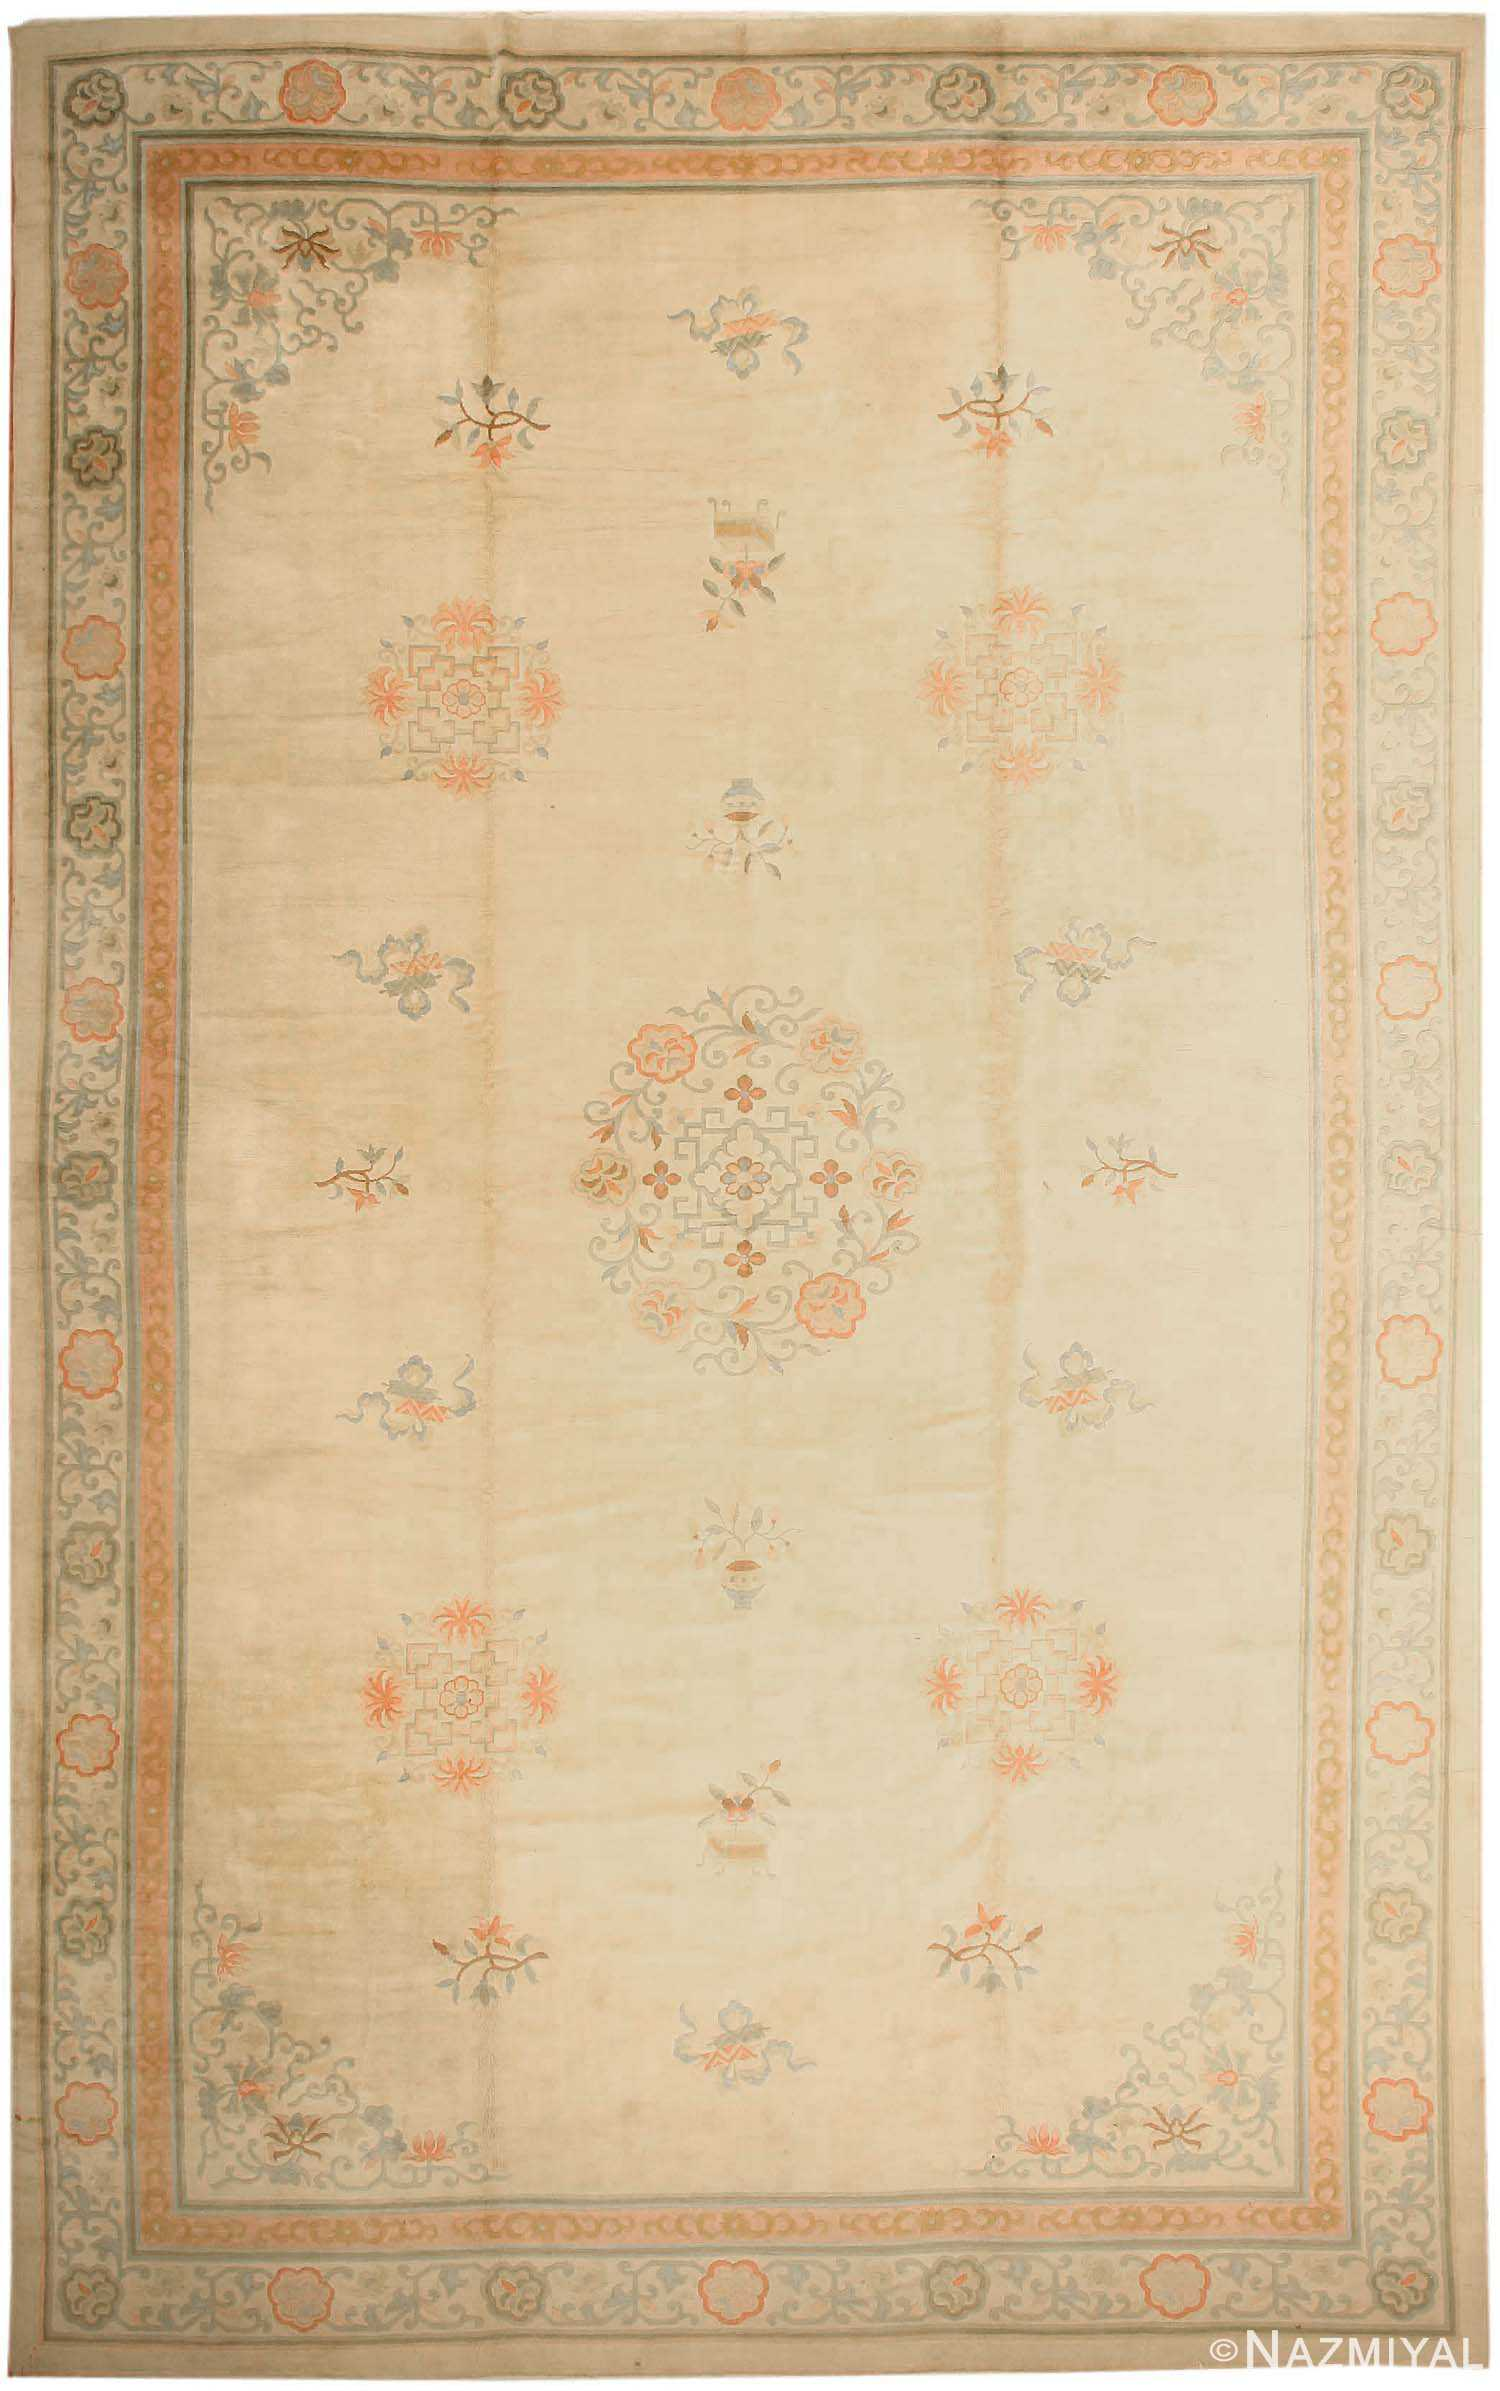 Amazon.com: Oriental Rugs, Antique and Modern (9780486223667